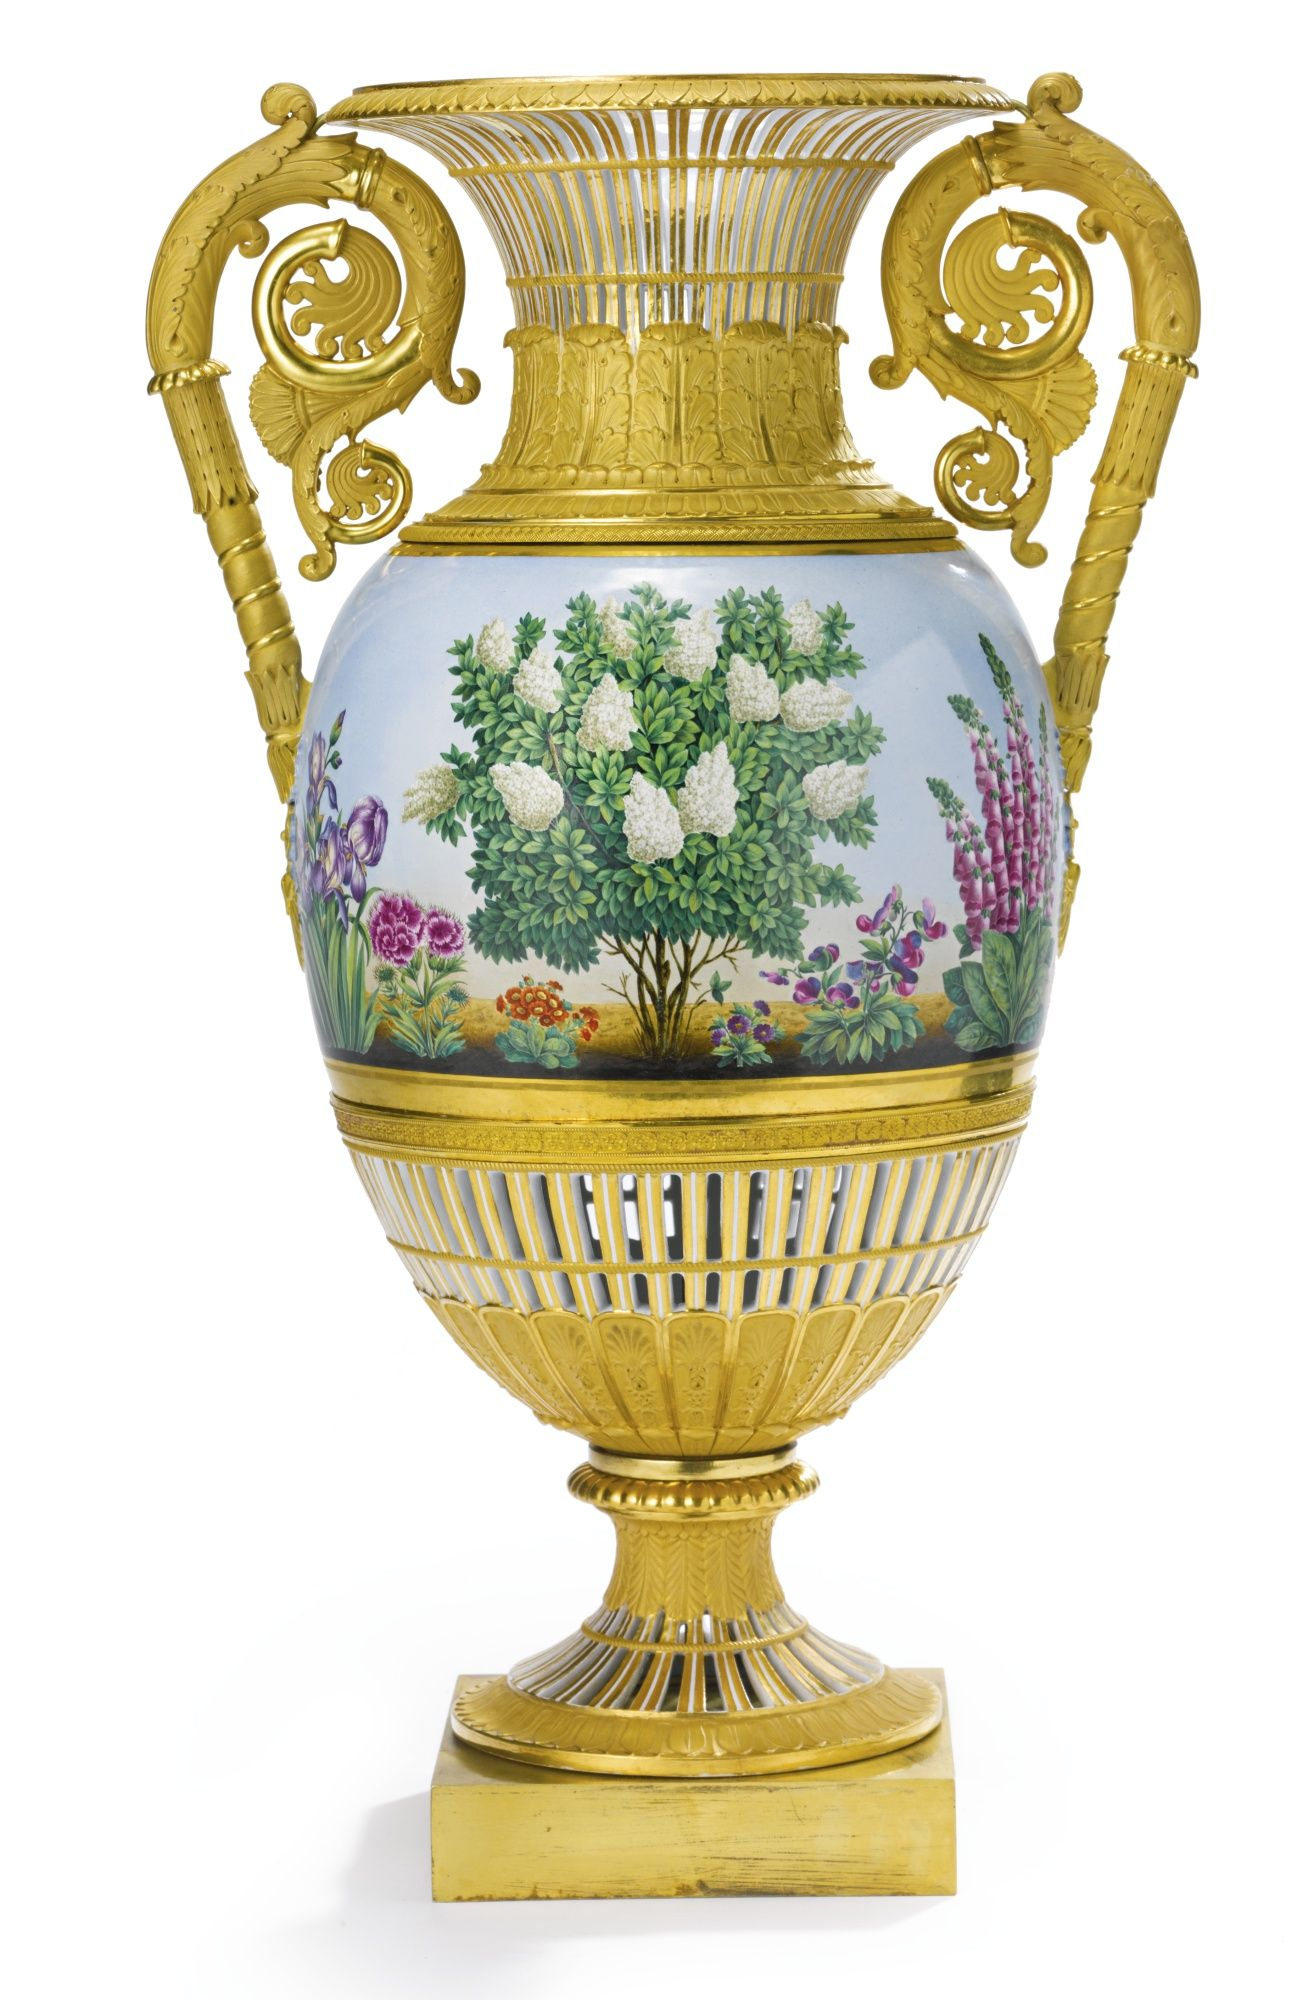 Museum of the Imperial Porcelain Factory in St. Petersburg